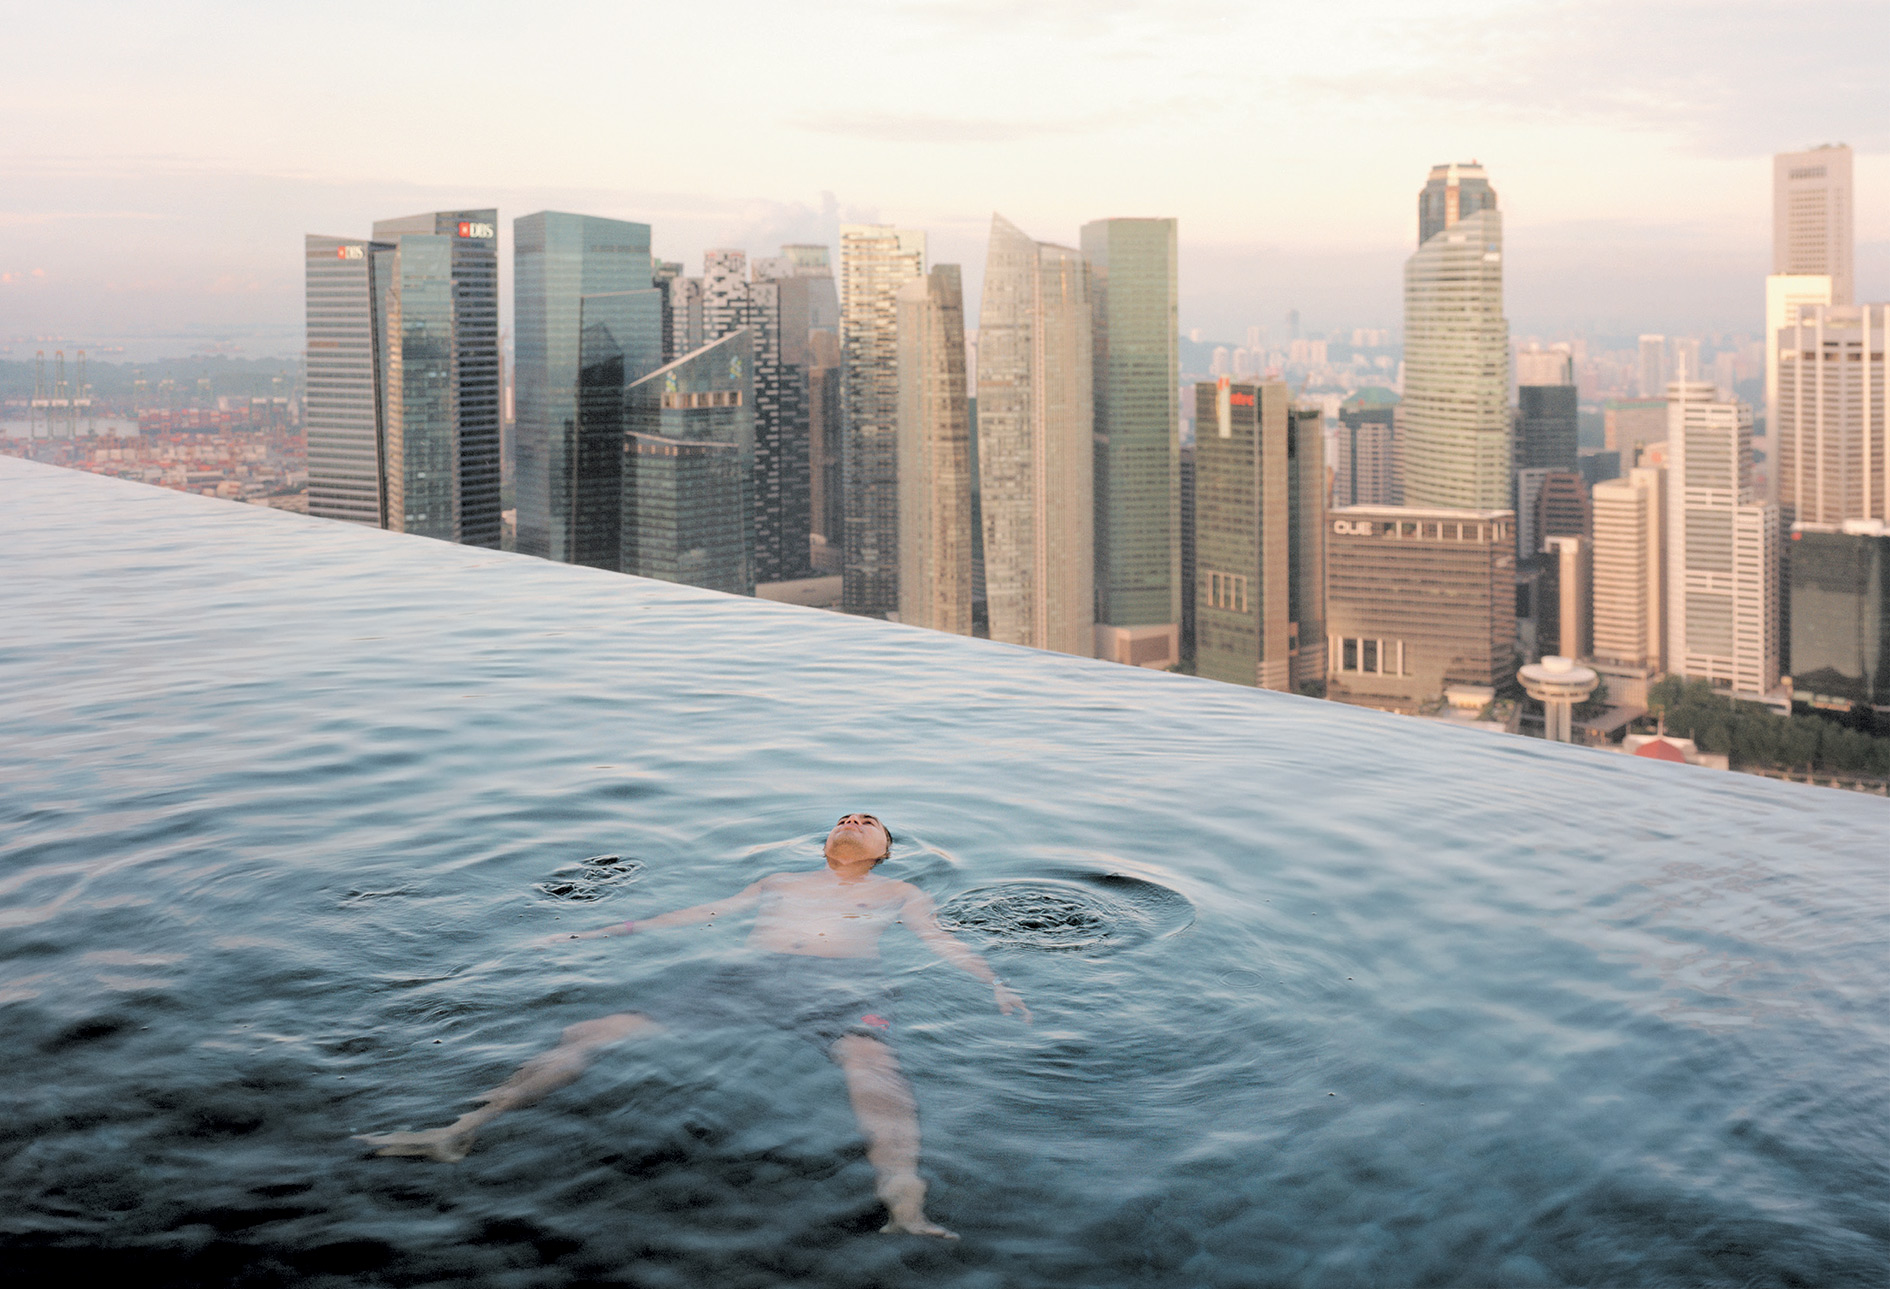 Floating on top of the world – a well-heeled client enjoys himself in the infinity pool of the luxurious Marina Bay Sands hotel overlooking Singapore'sfinancial district (where discretion isguaranteed).